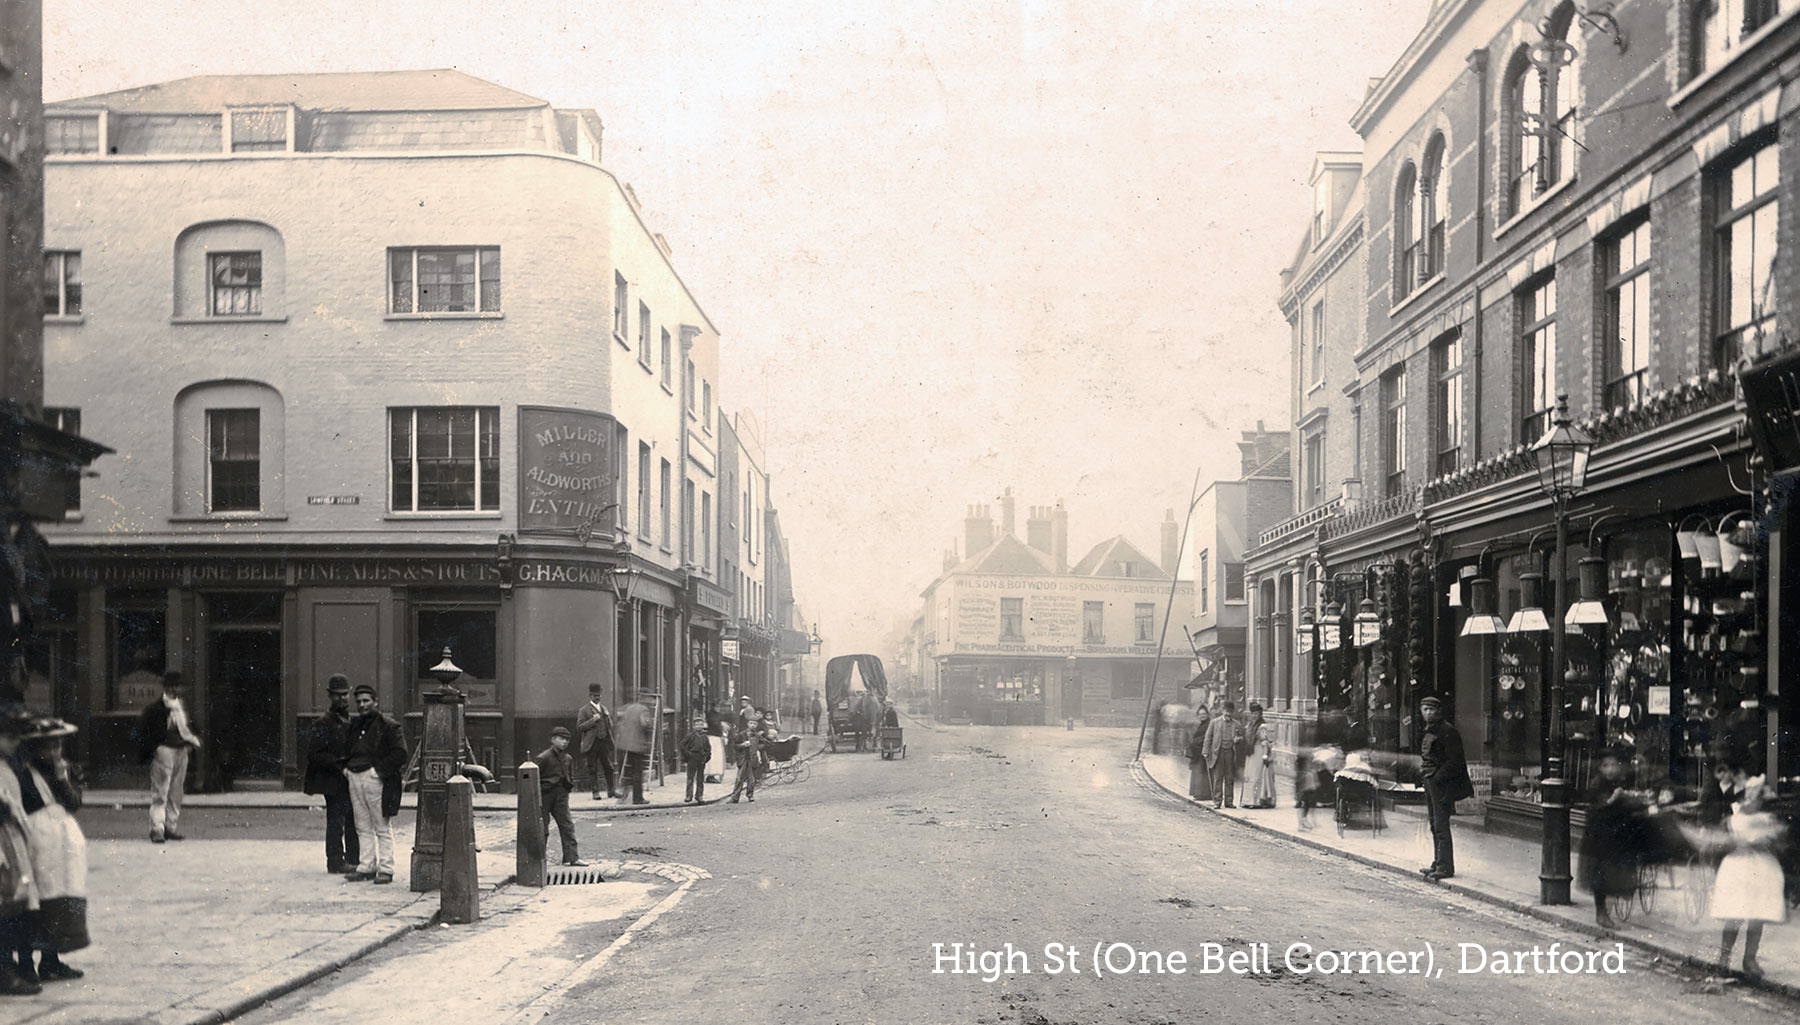 Dartford High St (One Bell) c1890s